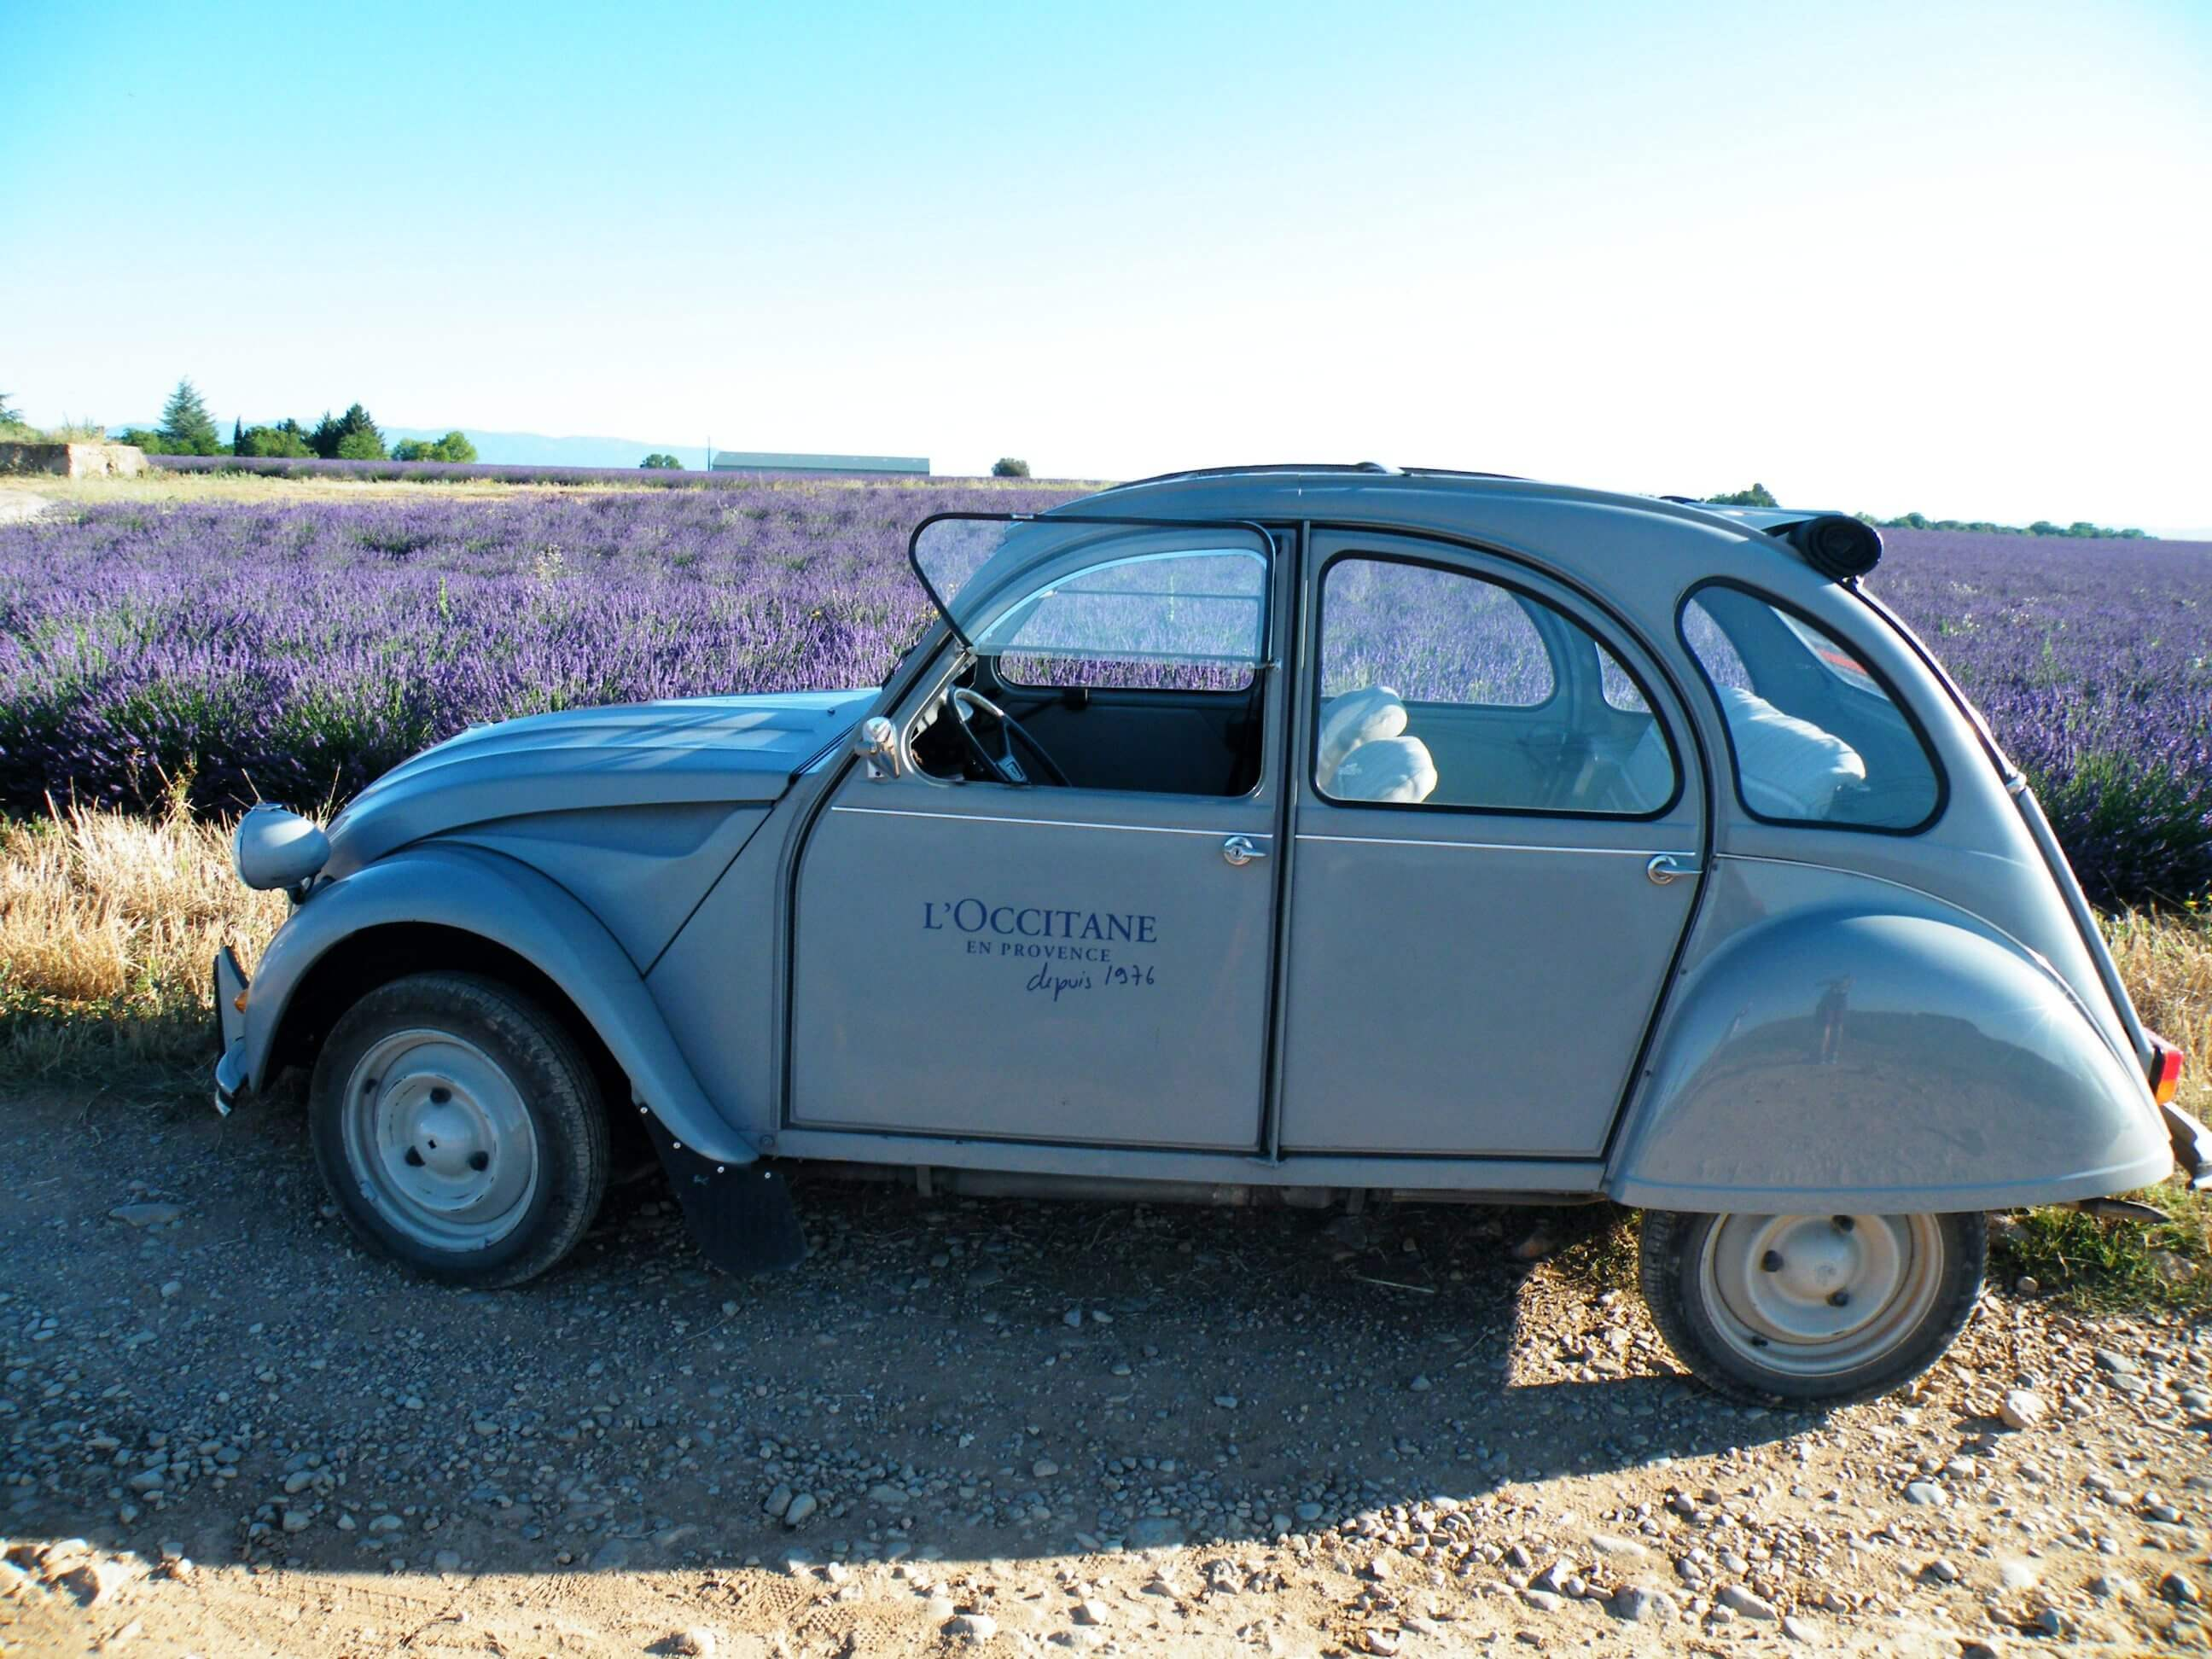 From field to field with the iconic 2CV car